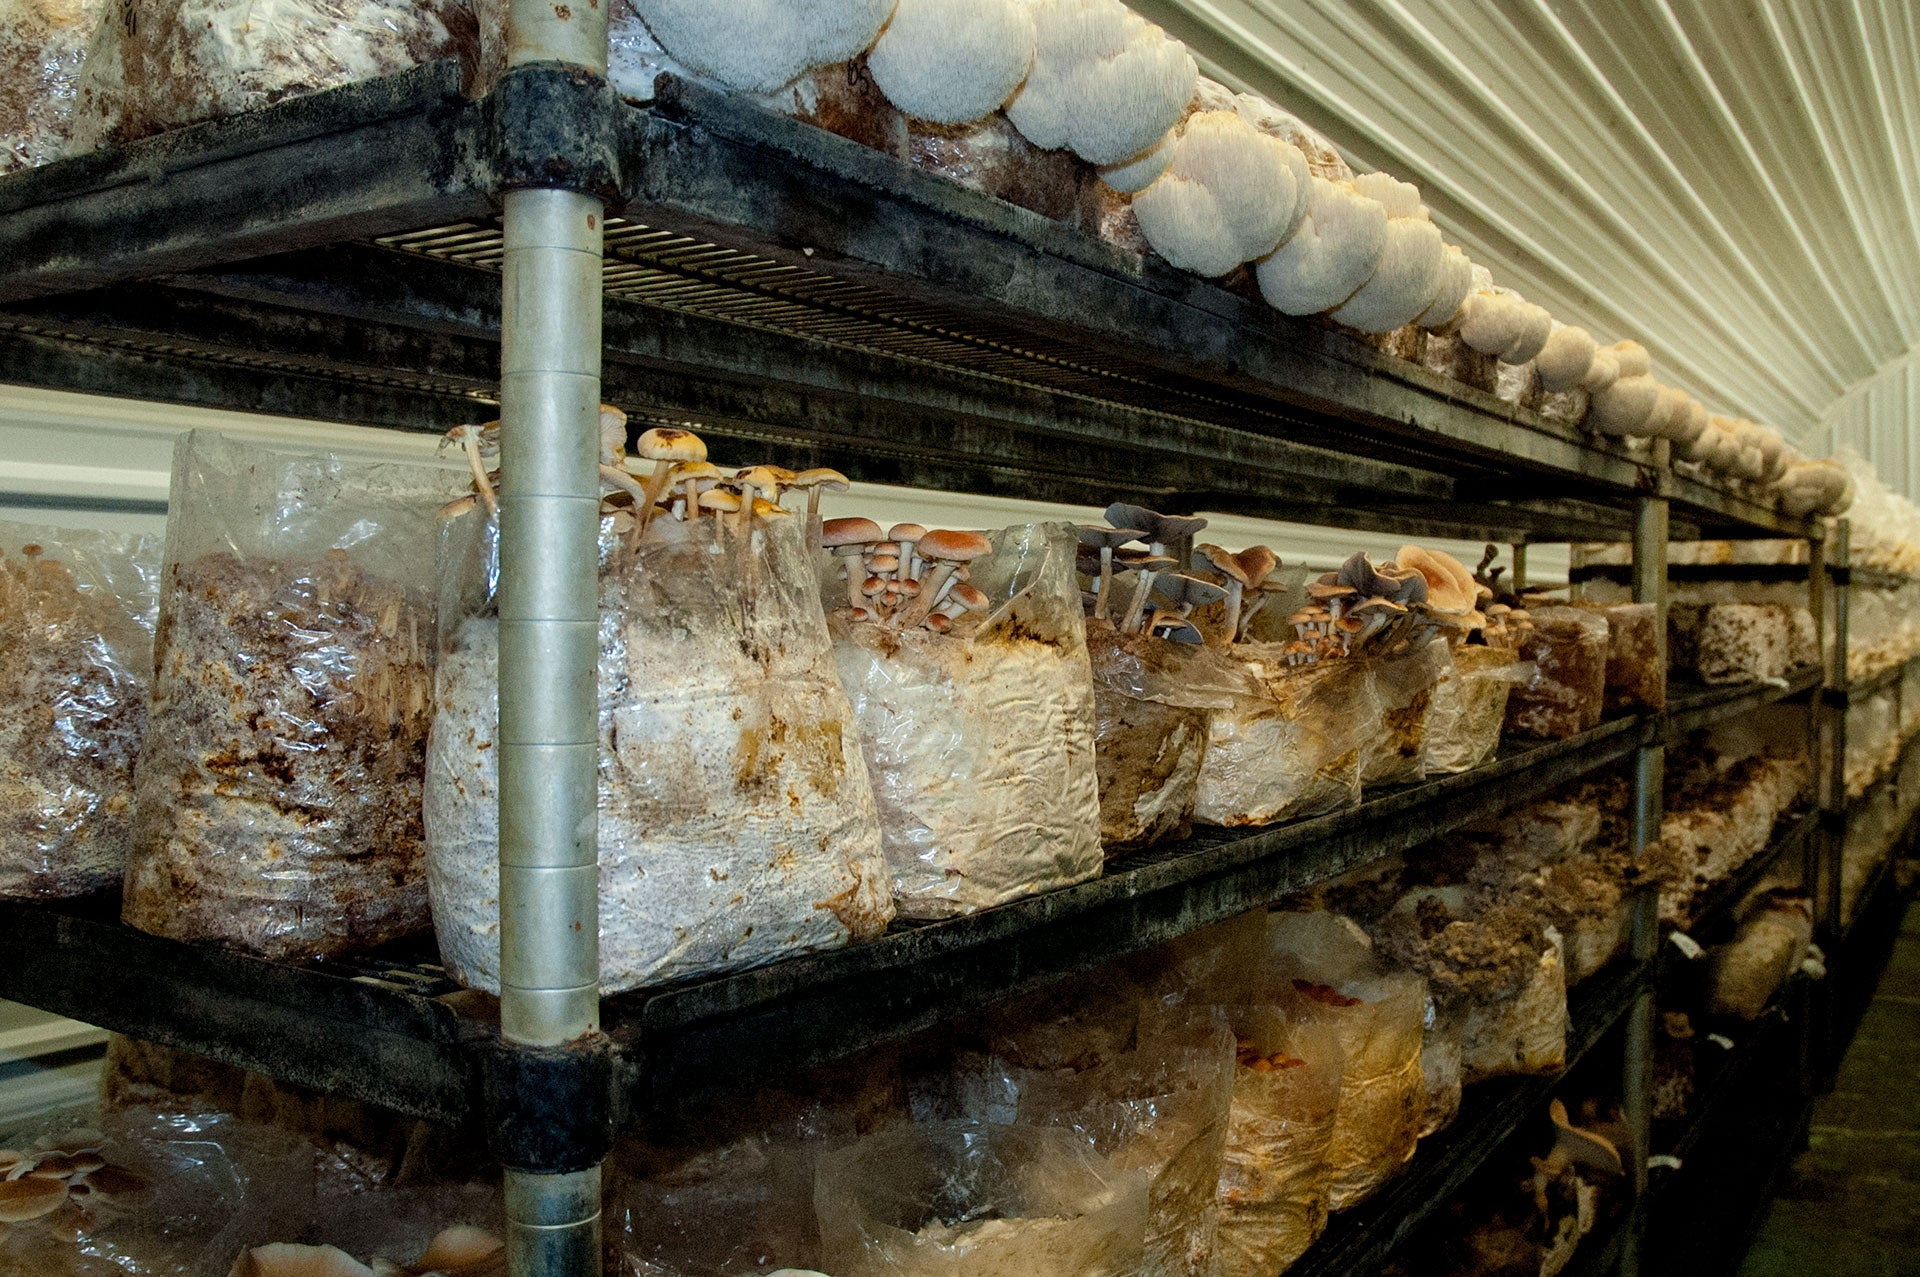 A Simplified Overview of Mushroom Cultivation Strategies